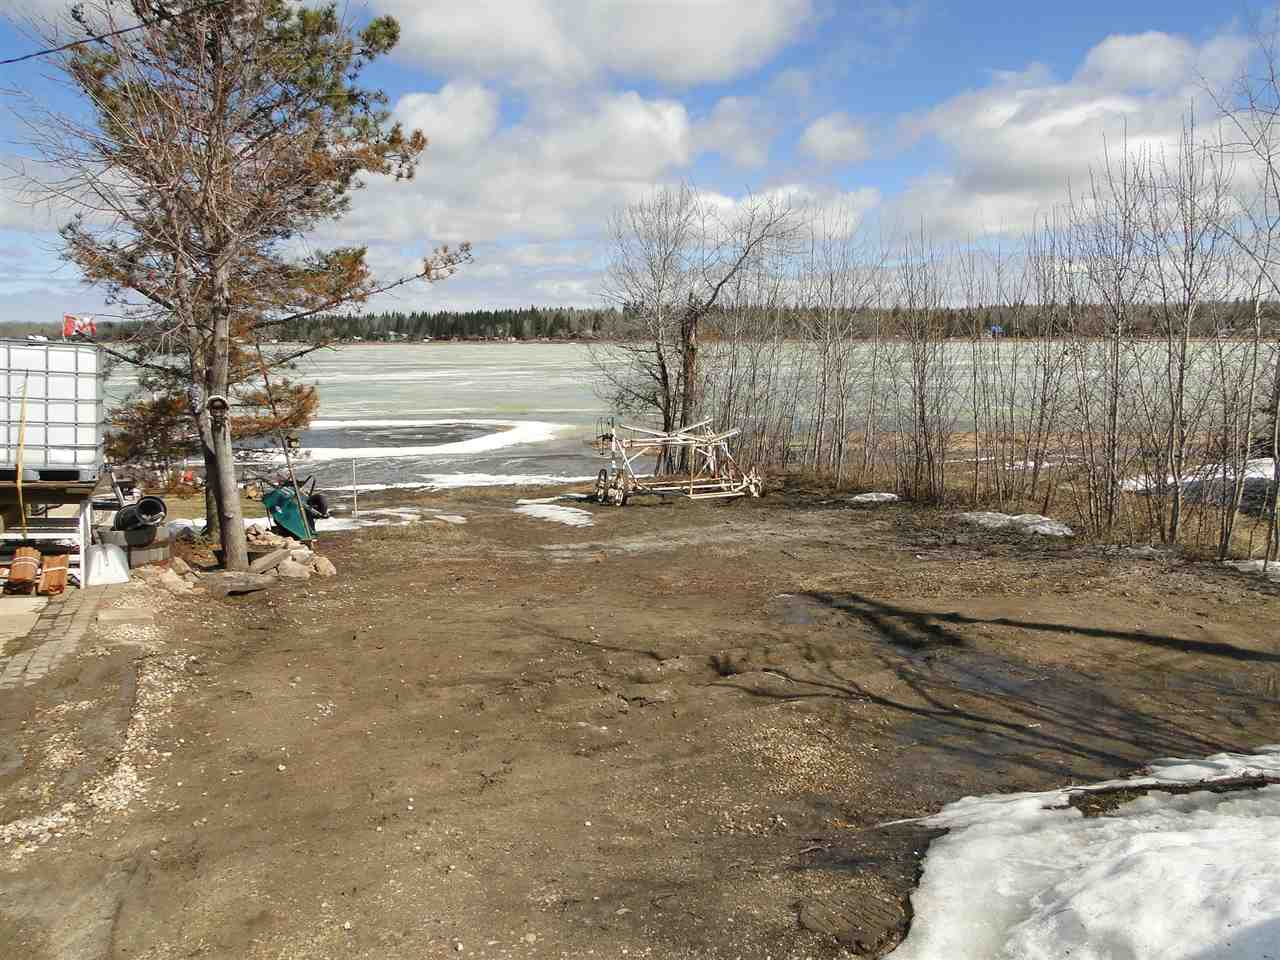 Located in the Summer Village of Sandy Beach this .15 acre waterfront property with beautiful views of the lake and wildlife is ready for a new home or cabin. A great spot for year round living, or a place to play and/or sit back and unwind. There is an existing septic holding tank that will need to be determined if still usable.